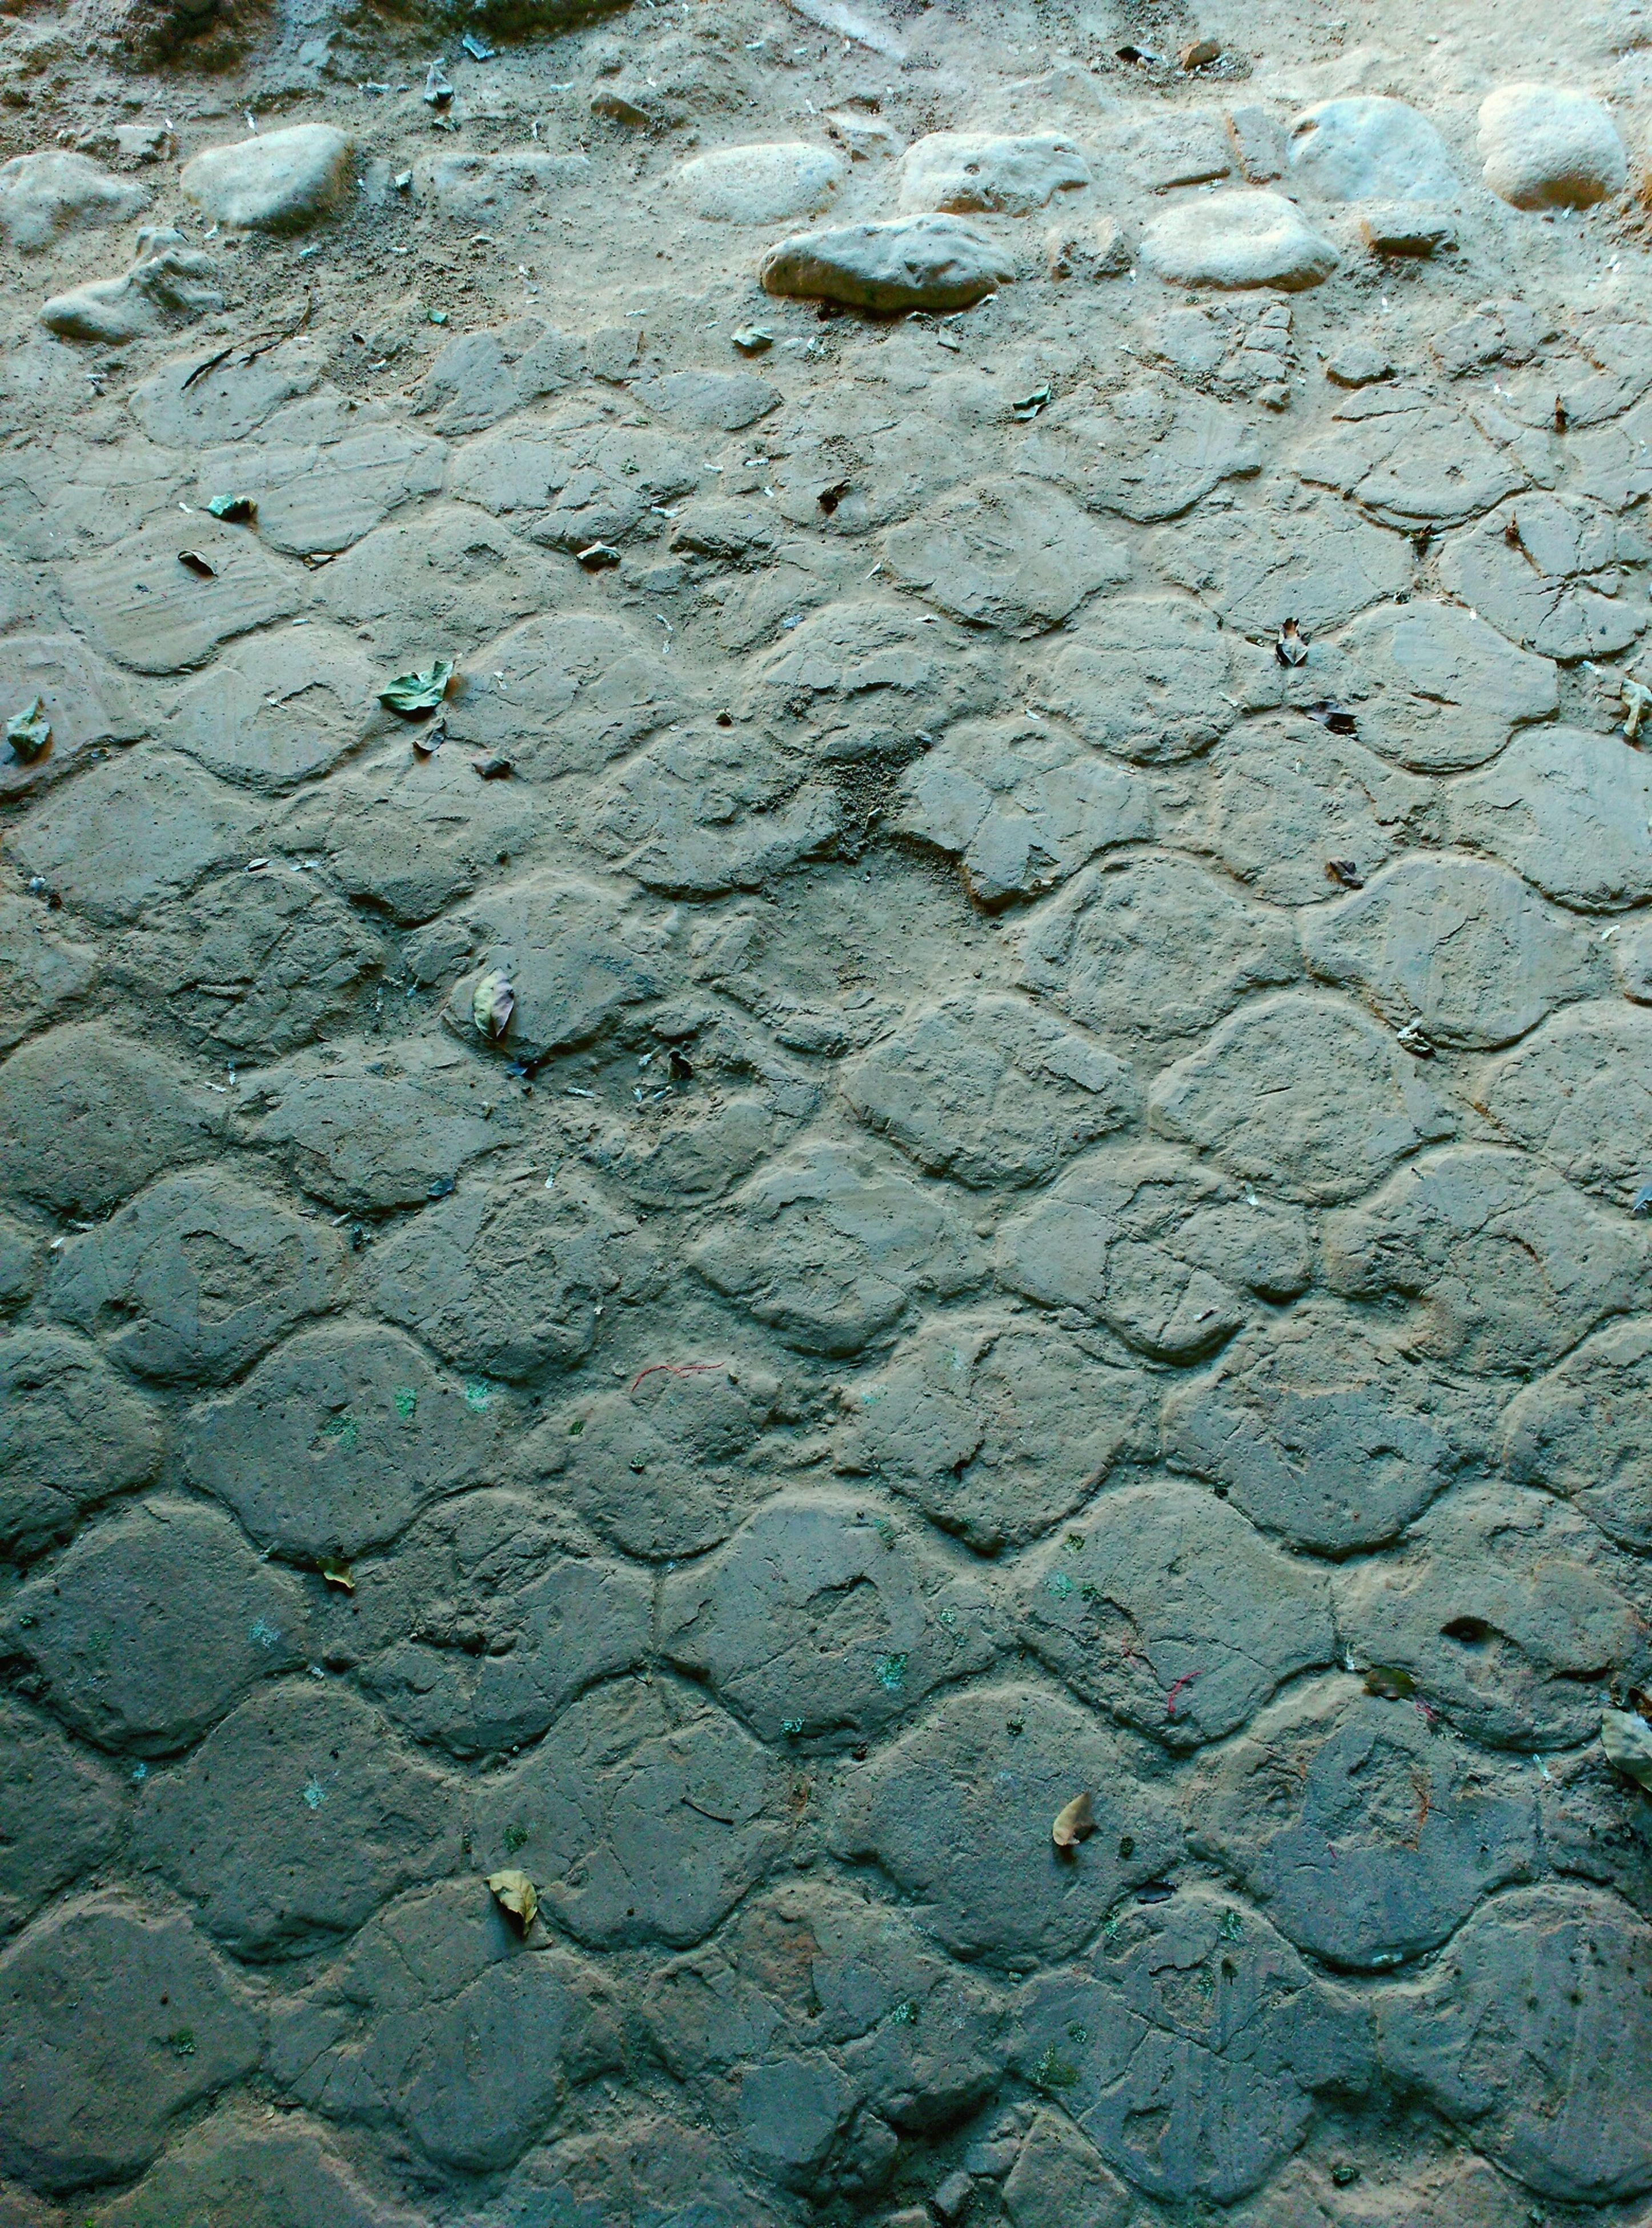 high angle view, pattern, no people, nature, full frame, outdoors, backgrounds, textured, day, close-up, paw print